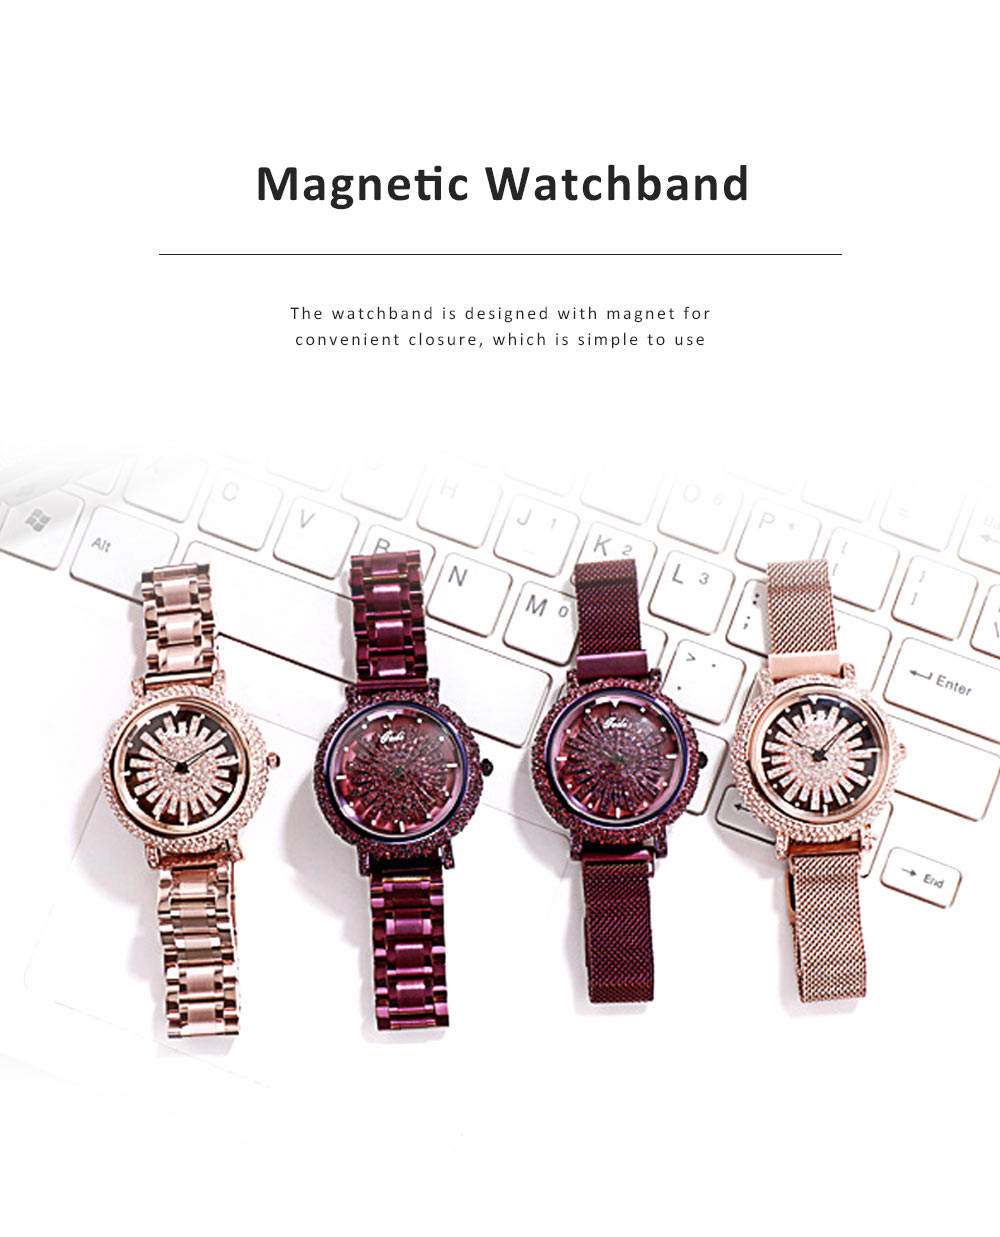 Stylish Quartz Watch with Large Glass Dial Diamond Mounted Watch 360 Degree Rotation Milanese Mesh Strap Wristwatch for Women 3